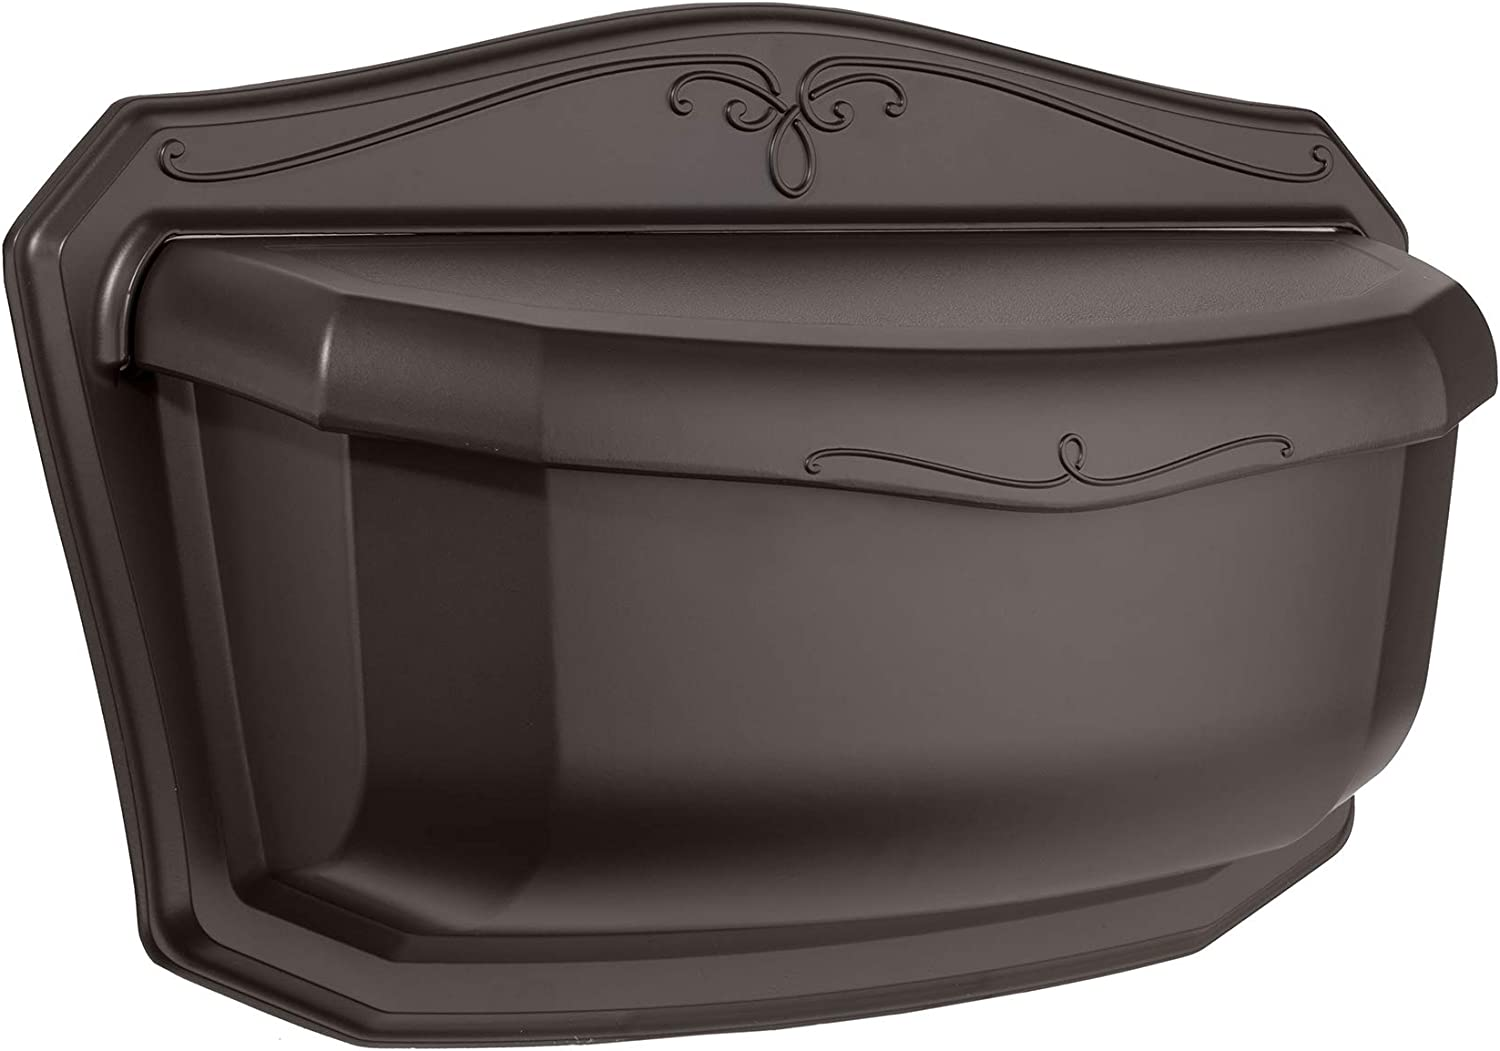 ARCHITECTURAL MAILBOXES 2541RZ-10 Villa Rubbed Bronze Wall Mount Mailbox, Large